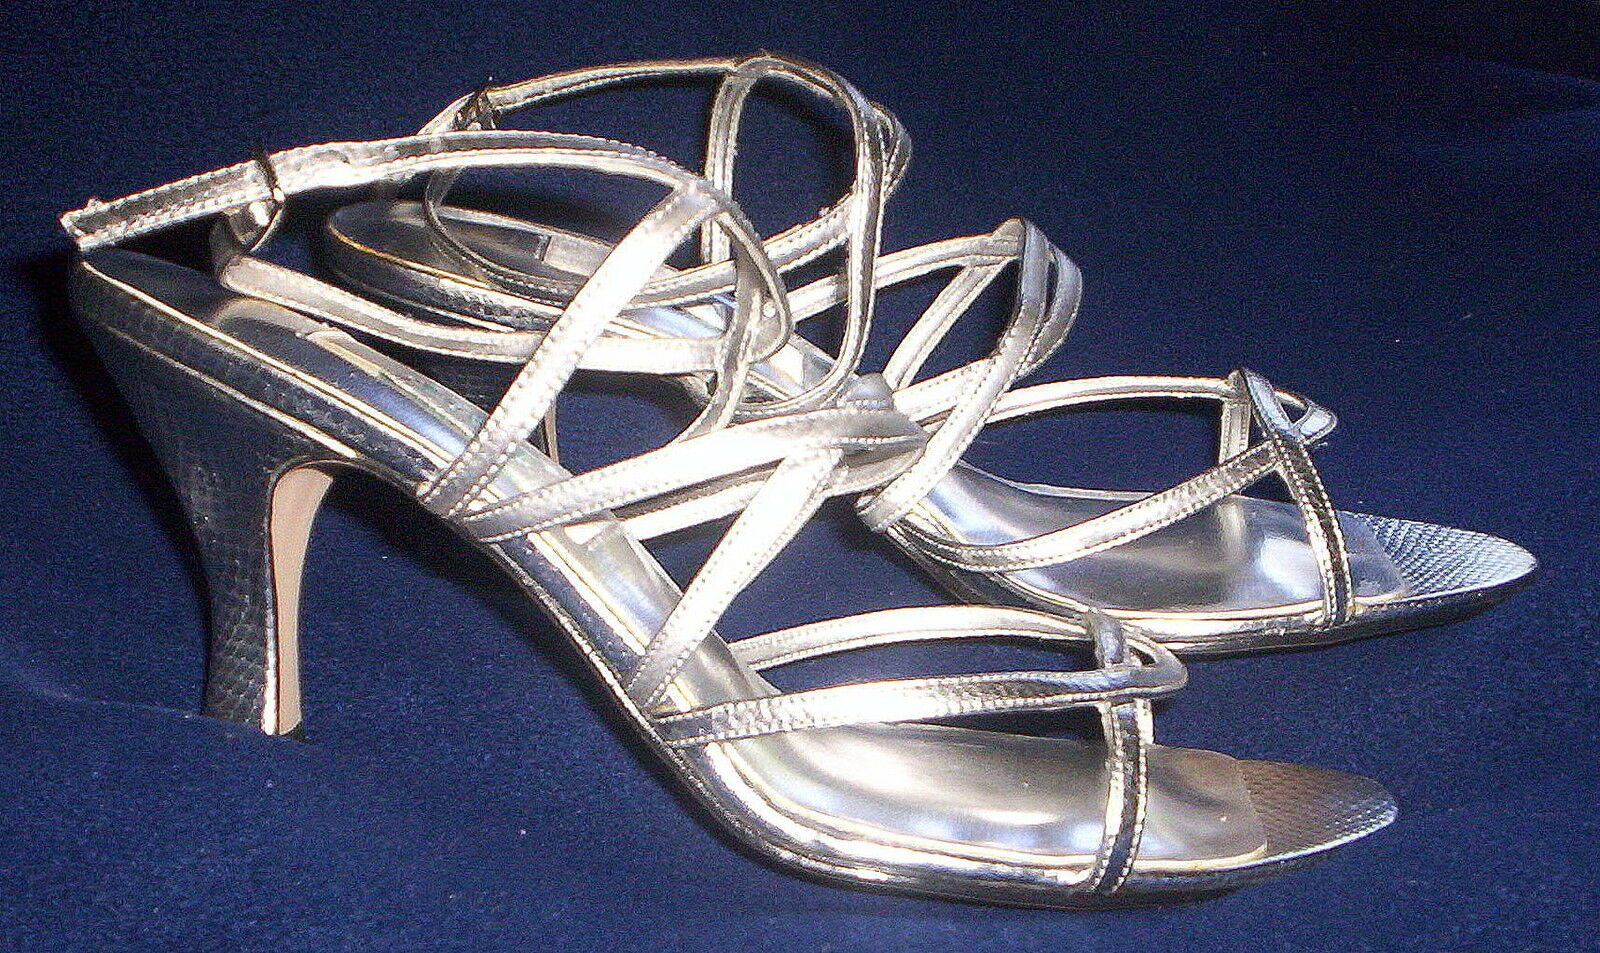 FrotERICO LEONE LADIES Silber Silber Silber BRIDAL FORMAL STRAPPY SANDALS schuhe s9½ NEW IN BOX de9a37